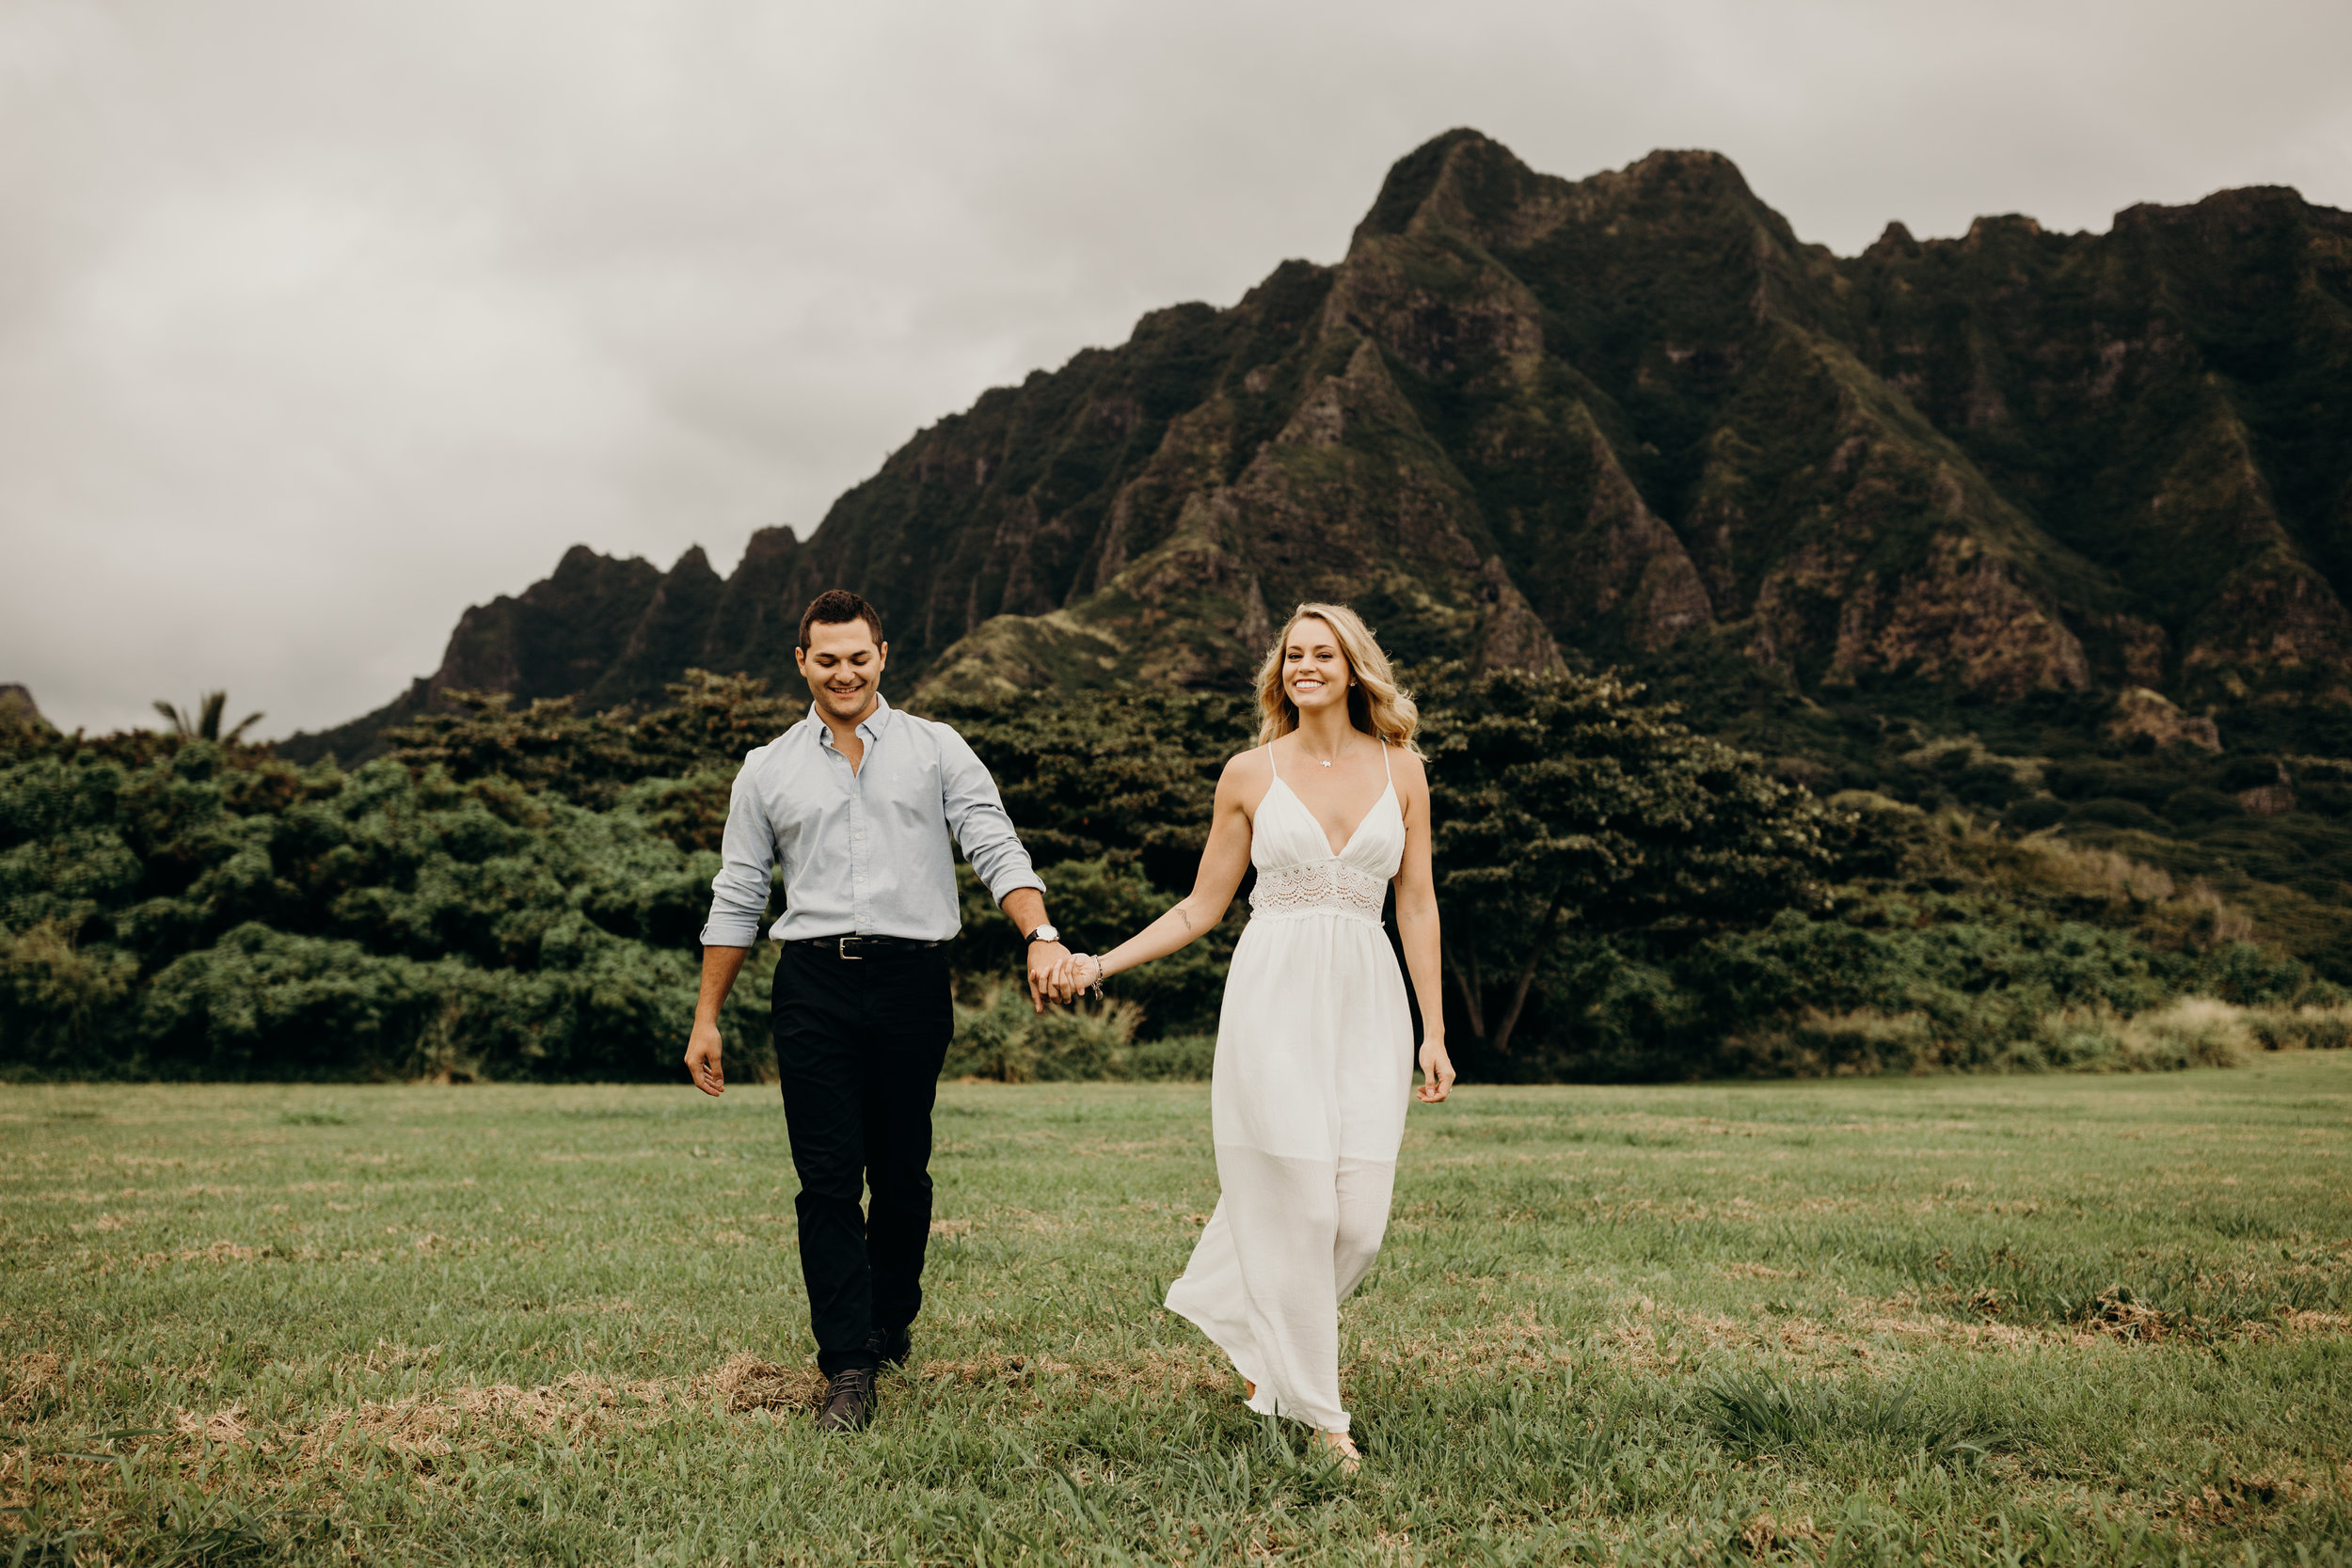 hawaii-engagement-photographer-keani-bakula-kualoa-ranch-4.jpg